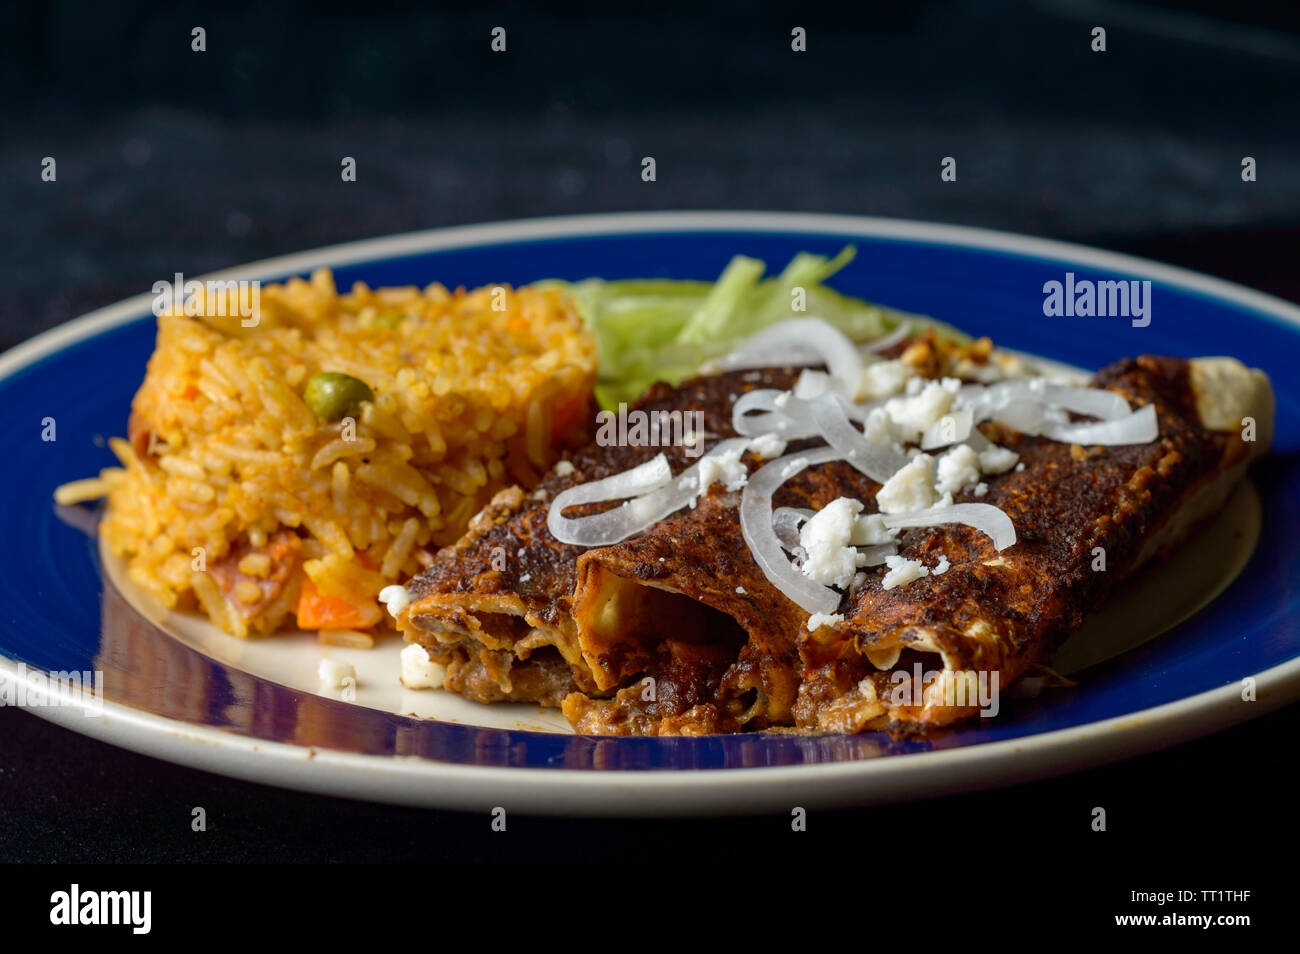 Mexican enmoladas, enchiladas topped with mole sauce and queso fresco, served with rice and salad. Isolated on dark background with copy space Stock Photo